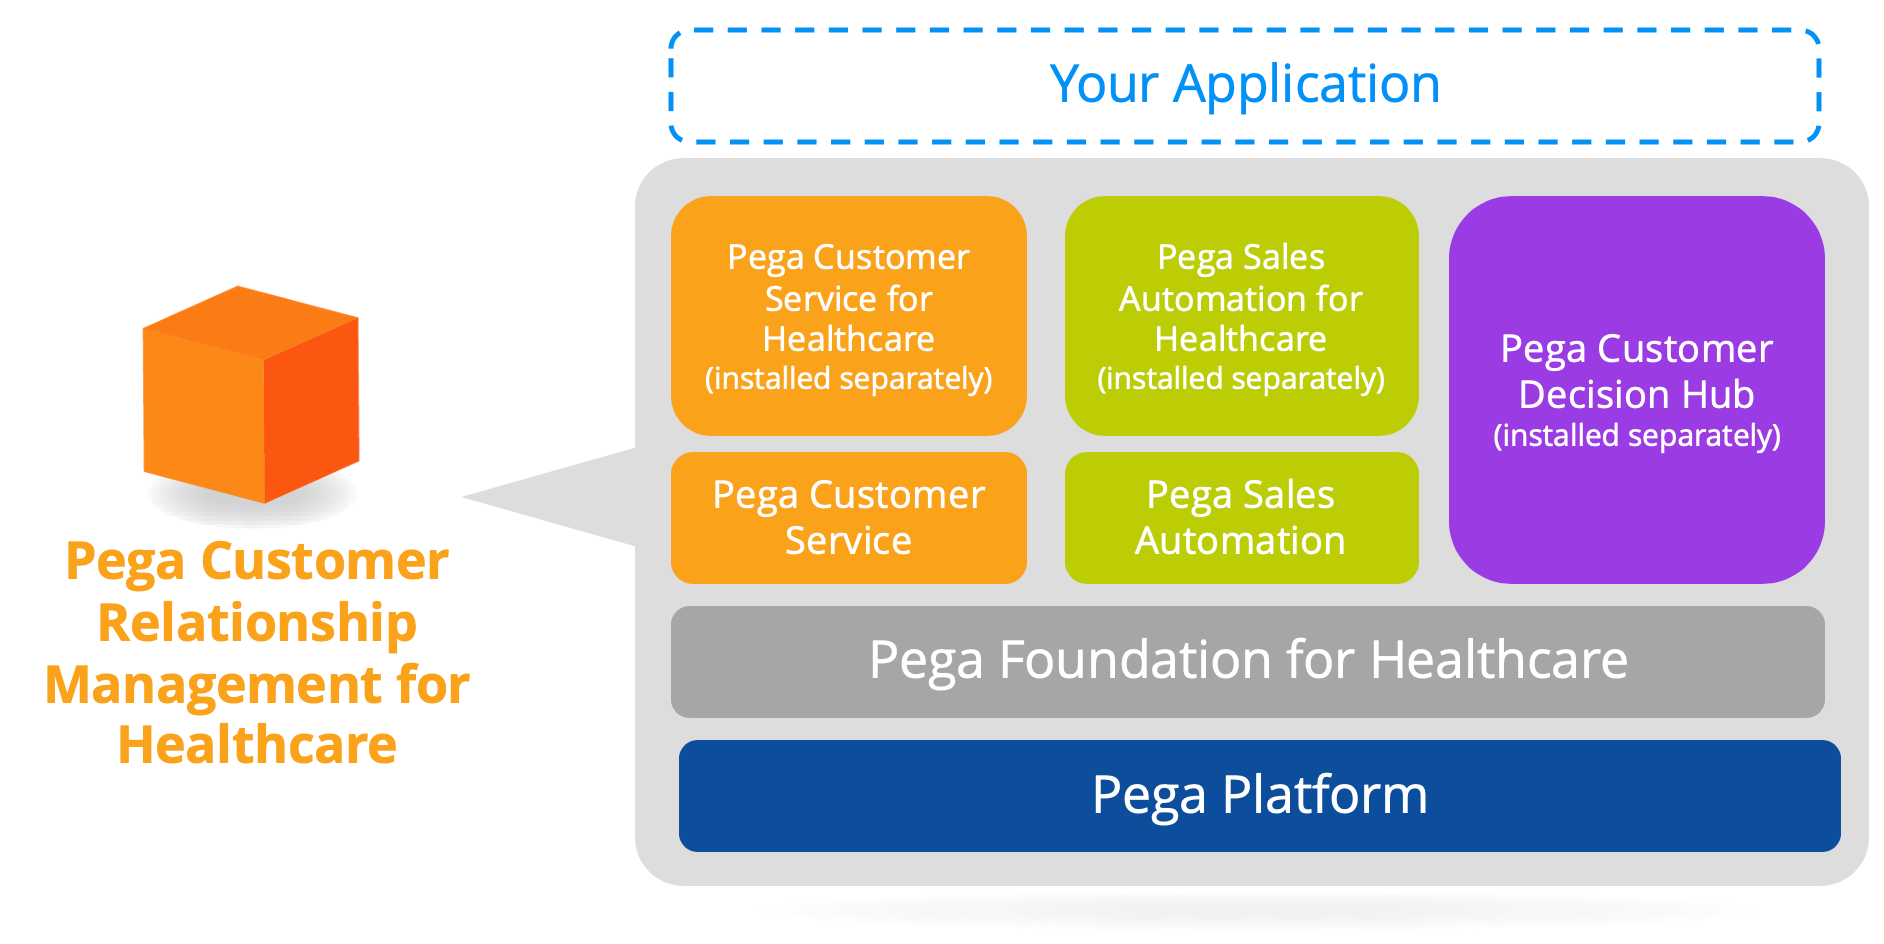 Pega Sales Automation for Healthcare application stack